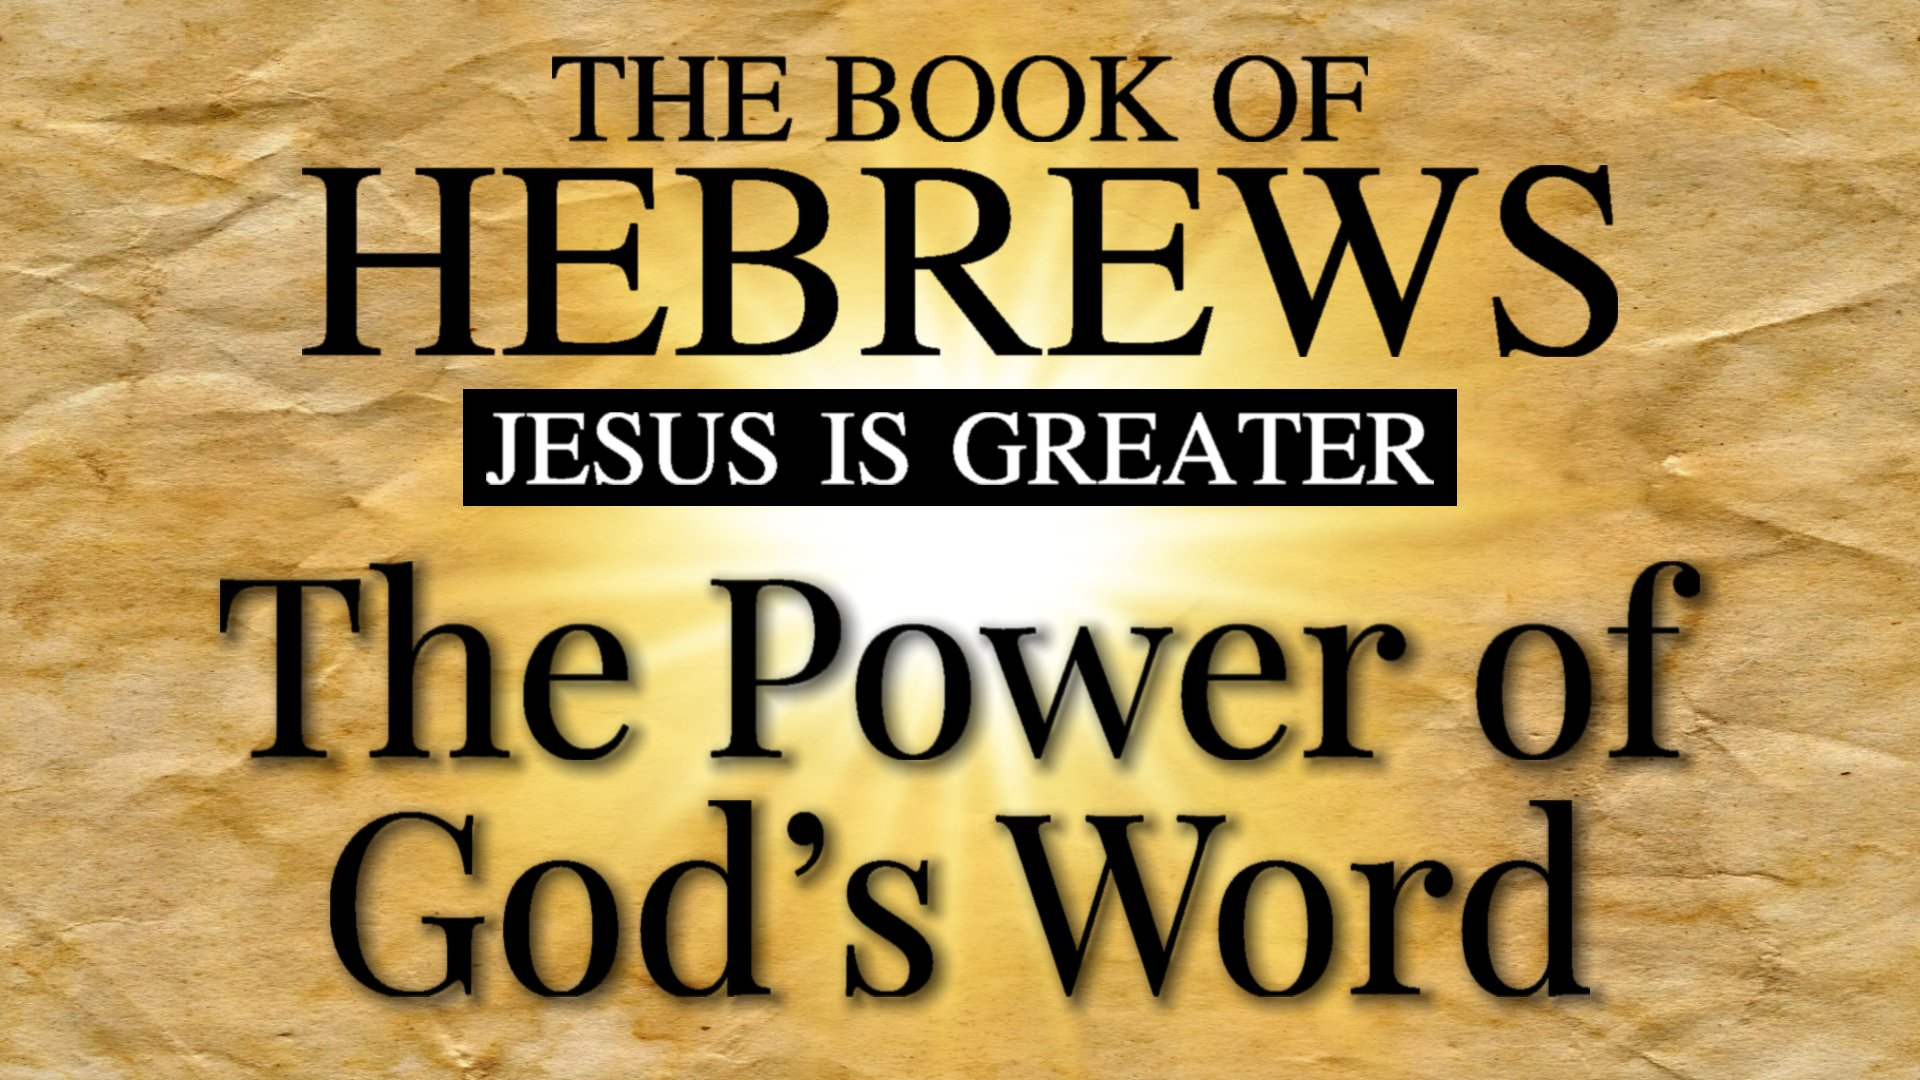 09 The Power of God's Word